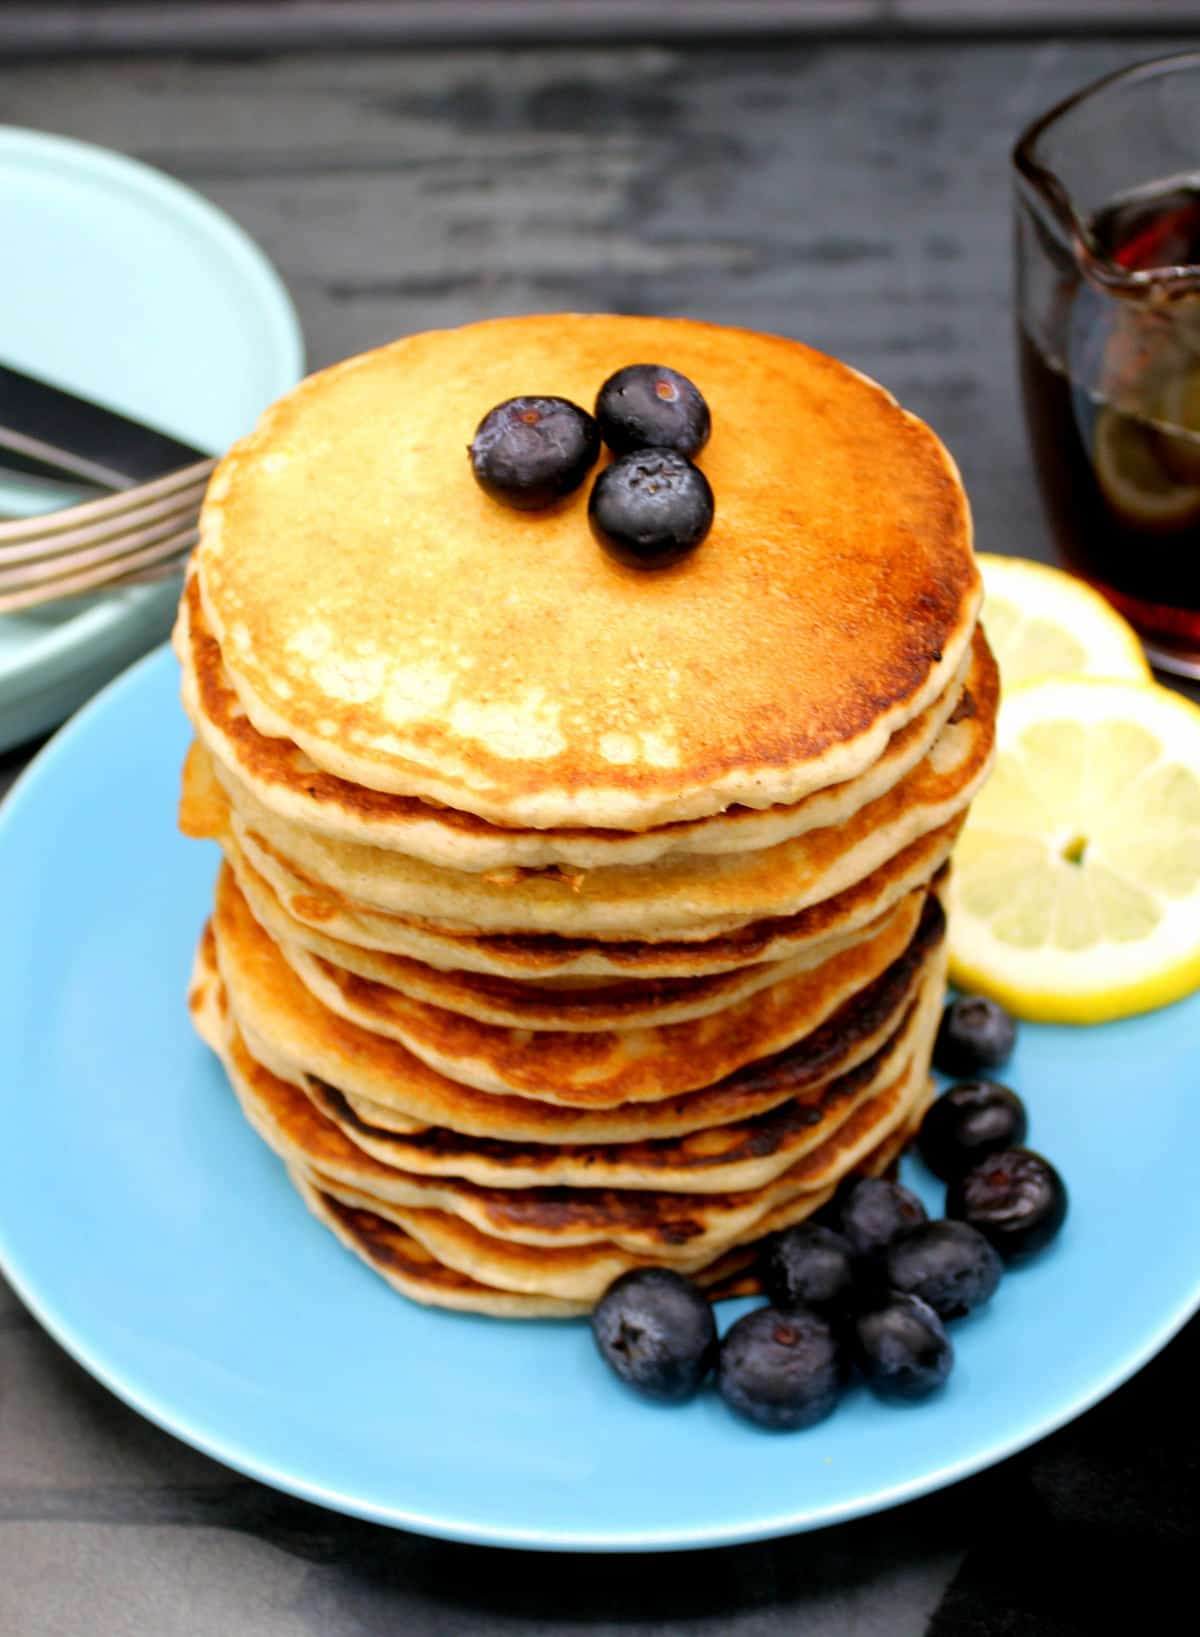 A tall stack of vegan lemon pancakes on a blue plate with blueberries and lemon slices and maple syrup on side.